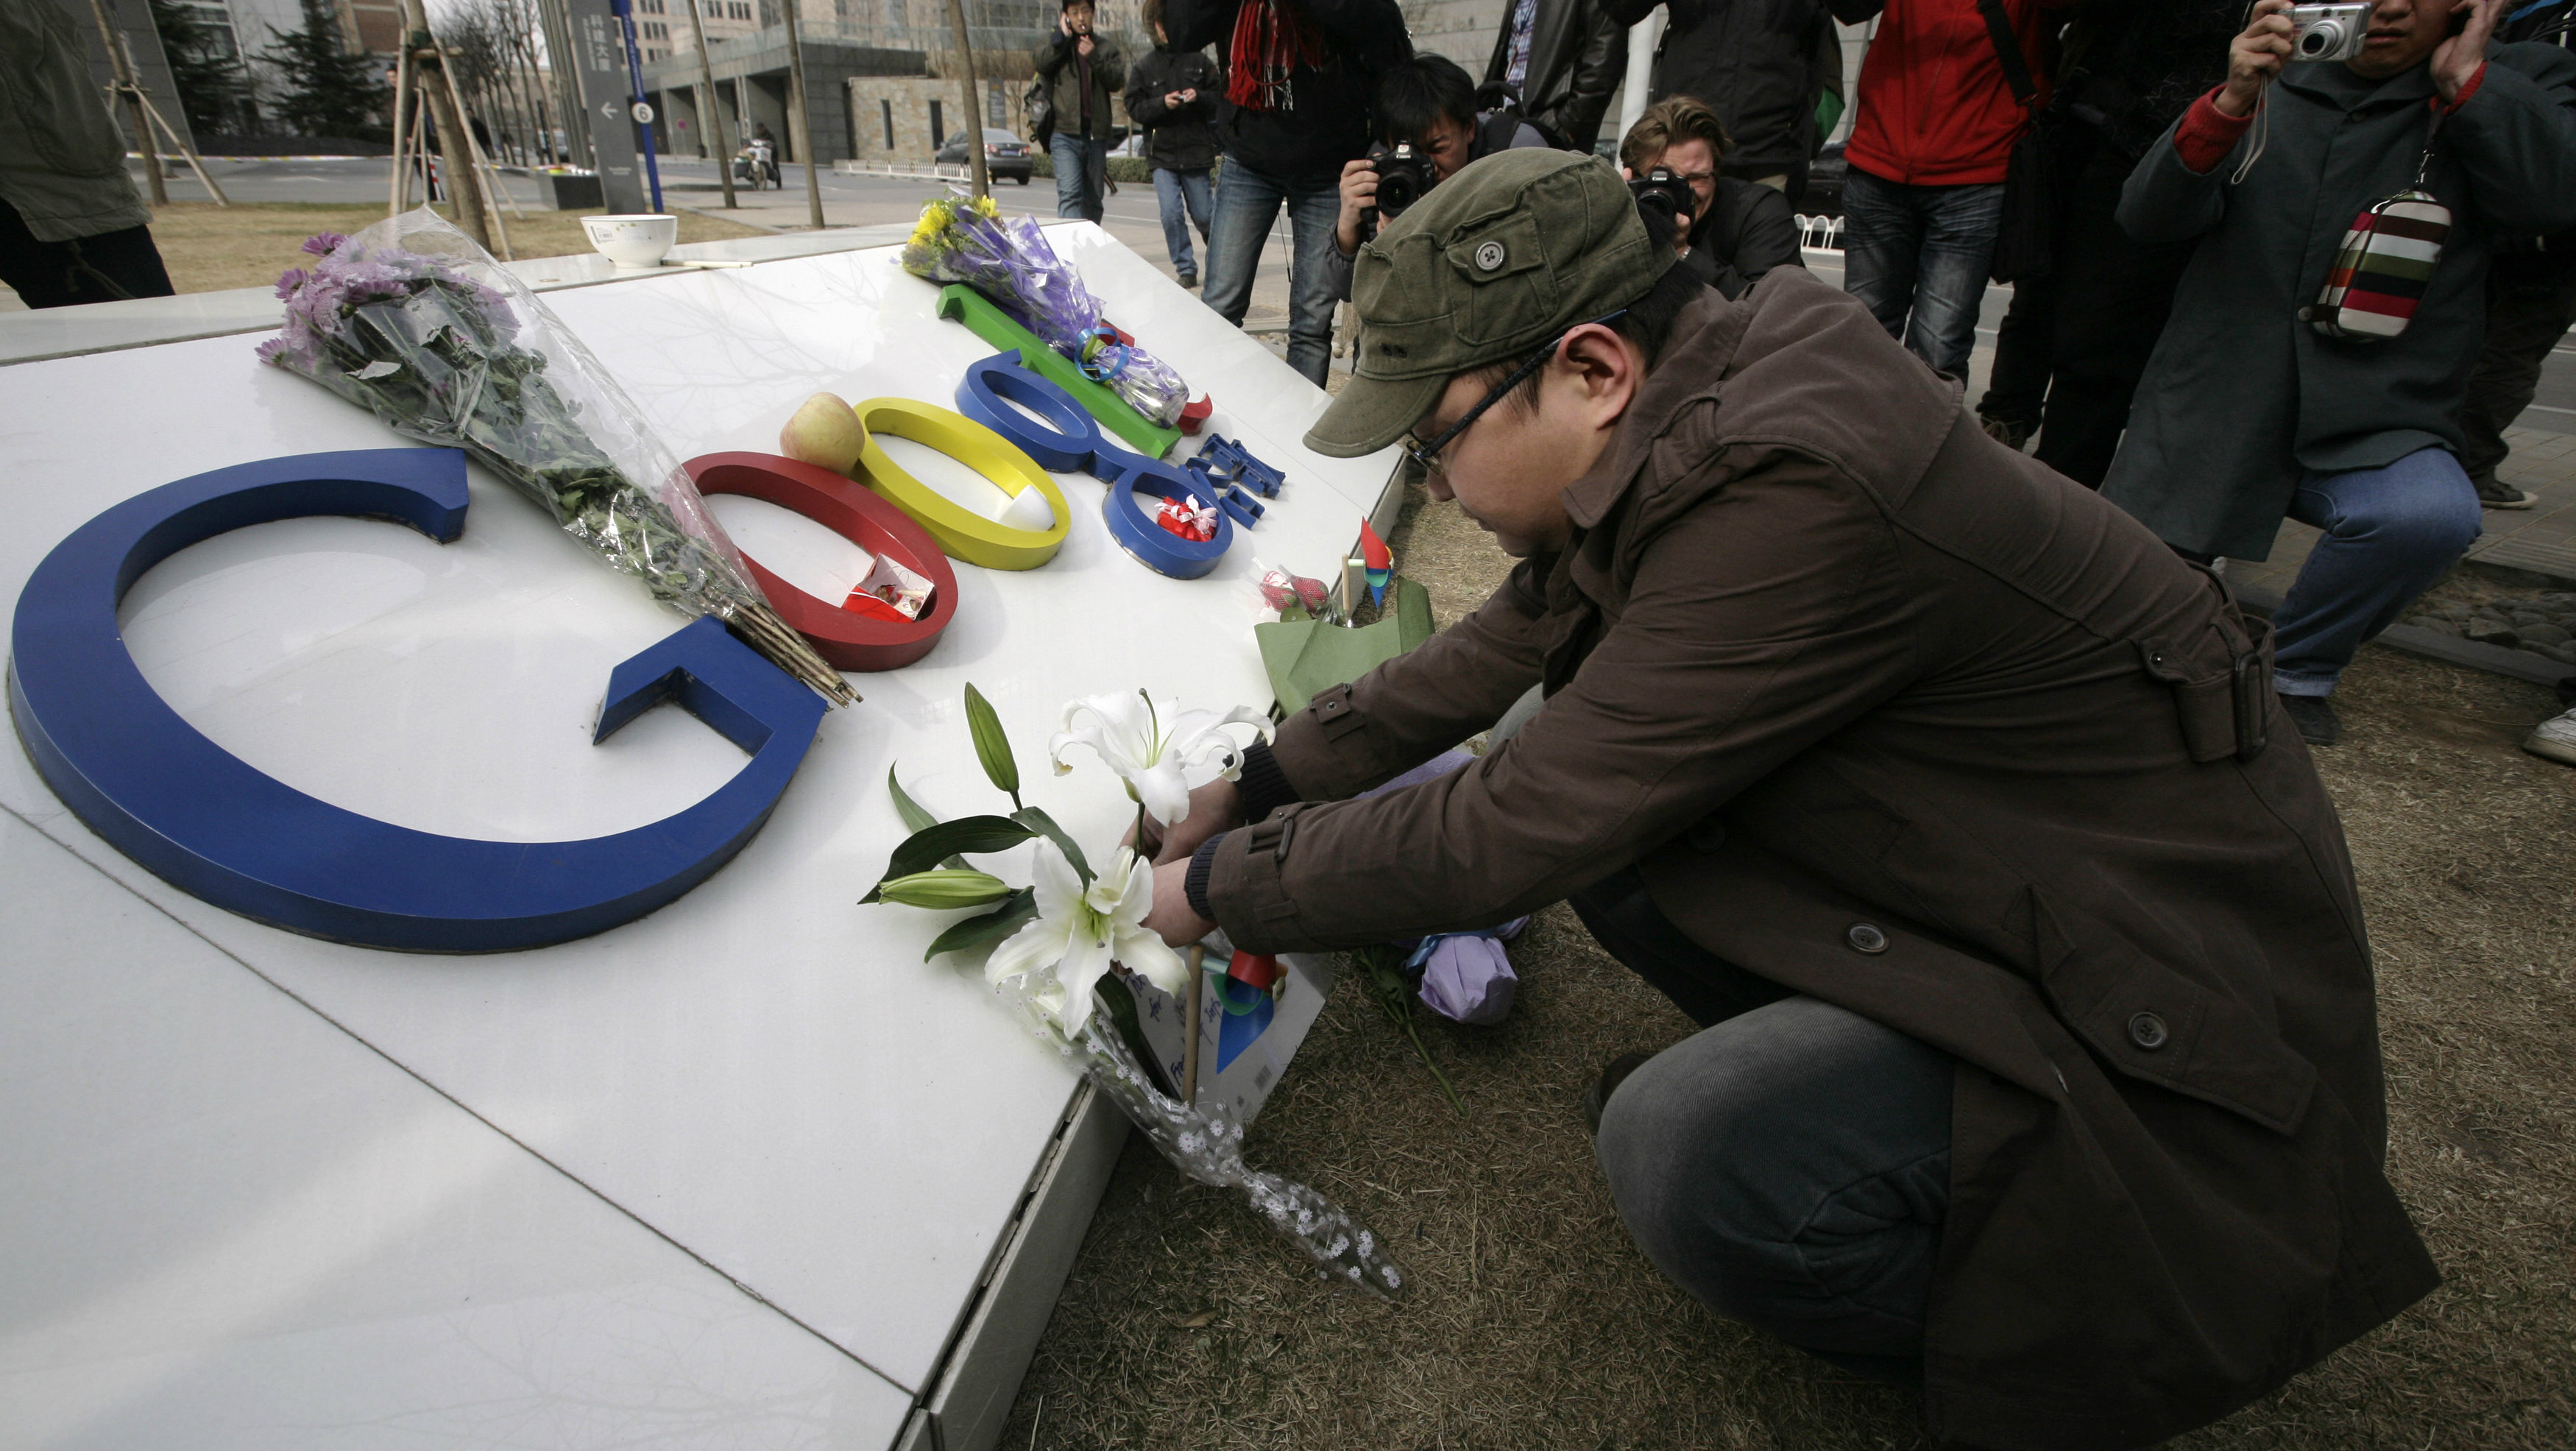 A man places flowers on the Google logo at its China headquarters building in Beijing March 23, 2010. Google Inc shut its mainland Chinese-language portal and began rerouting searches to an uncensored Hong Kong-based site, unleashing a blast of ire from Beijing and prompting concerns over its future business in China. This logo has been updated and is no longer in use.